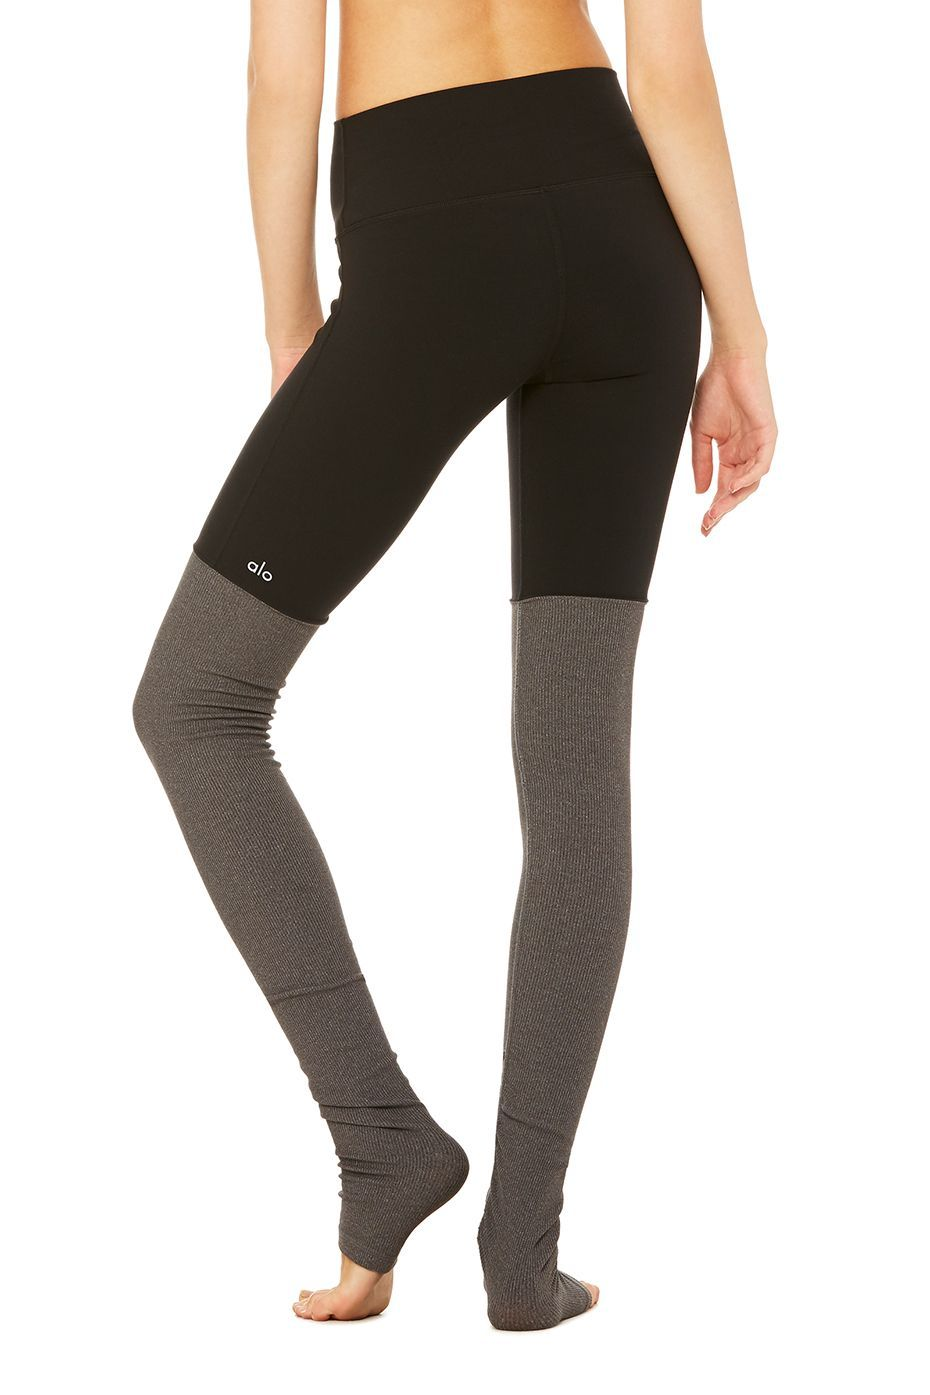 1c33101a50 Our patent-pending Goddess Legging features ultimate performance fabric  that slims and lifts your best assets. Performance-enhancing fabric and a  higher ...